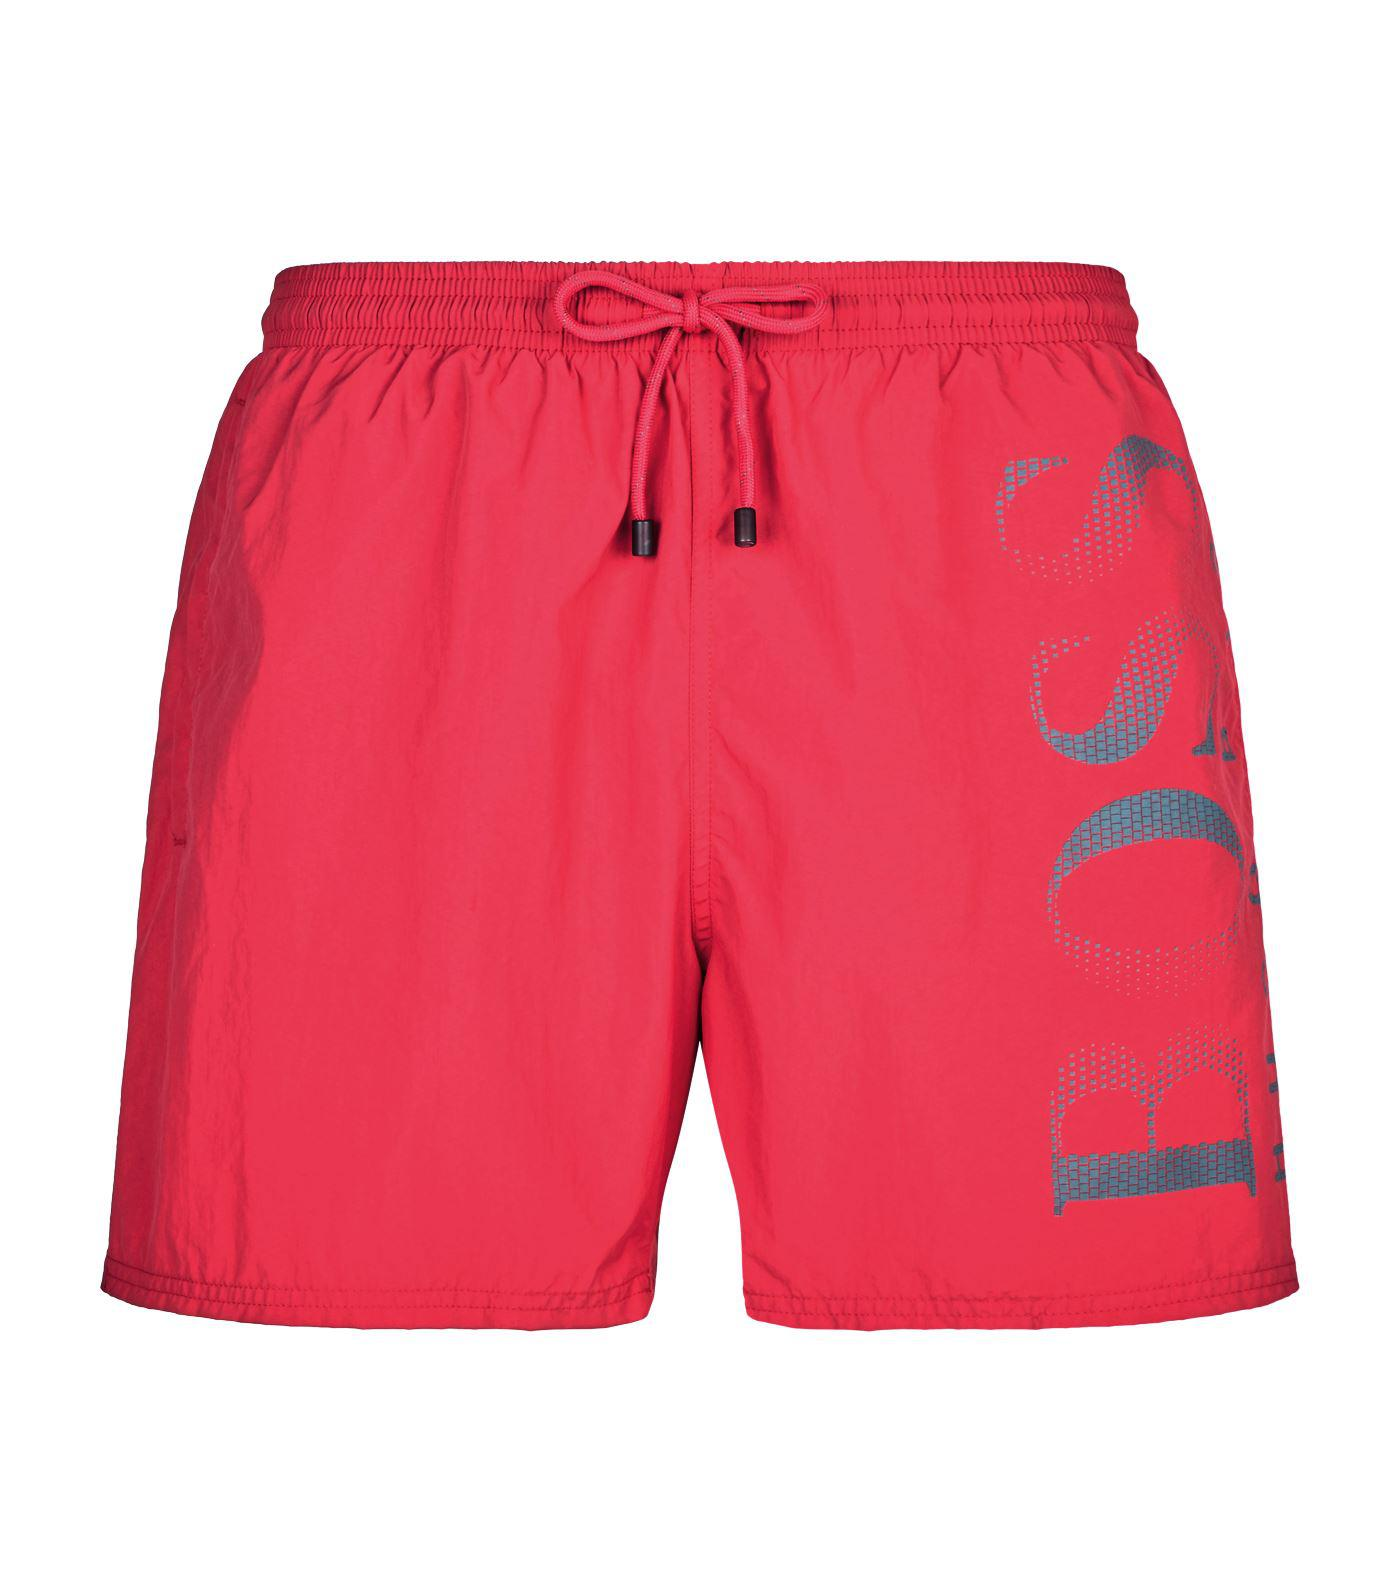 032a896a2 Lyst - BOSS Logo Swim Shorts in Pink for Men - Save 23.07692307692308%